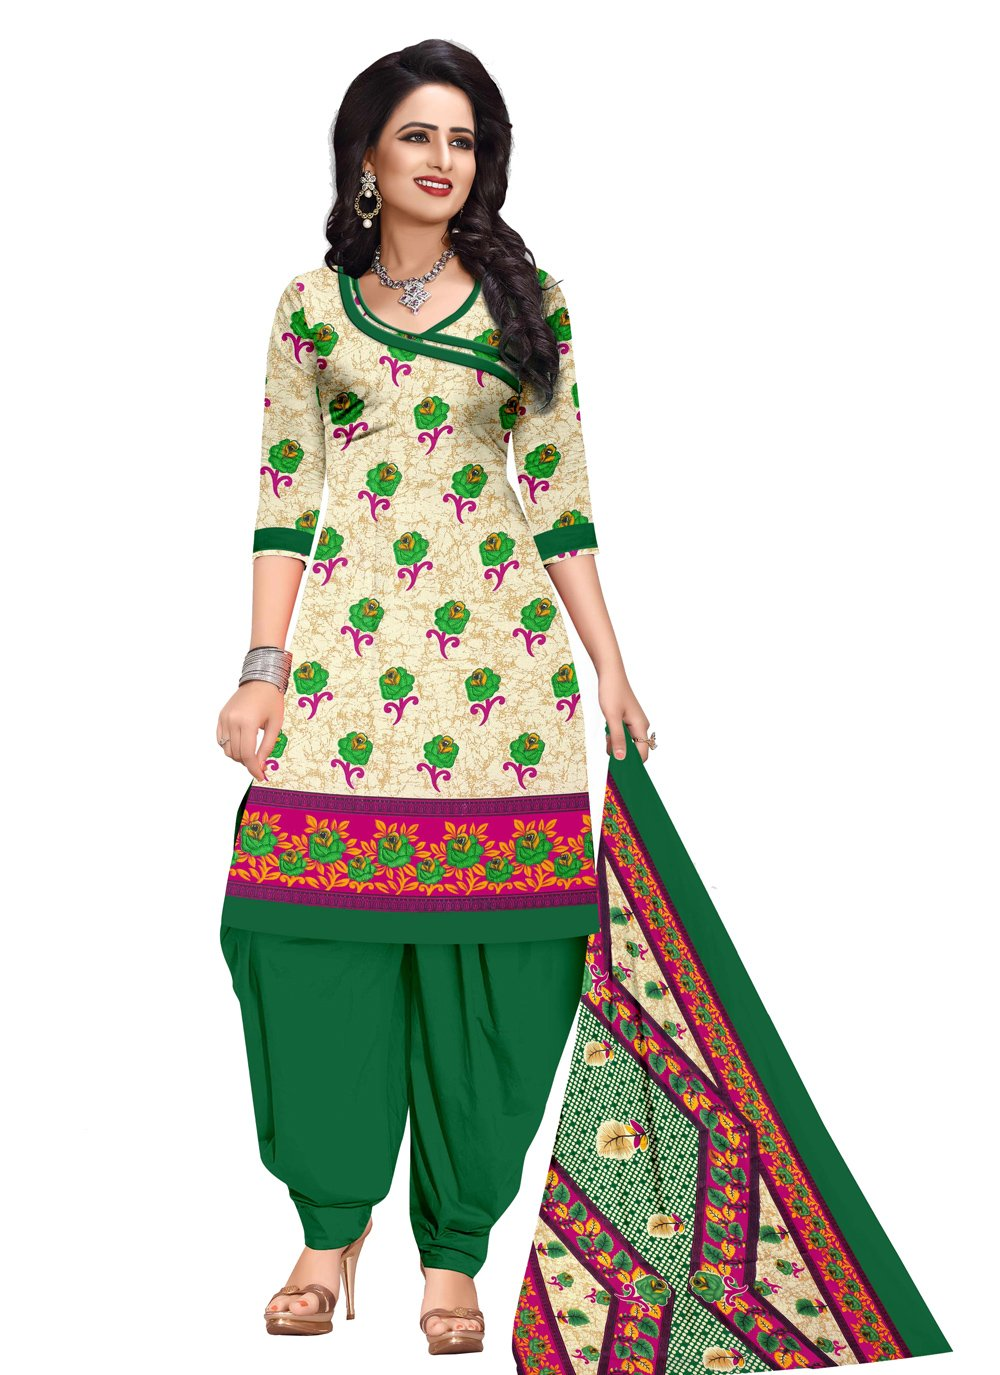 Printed Cotton Salwar Kameez in Cream